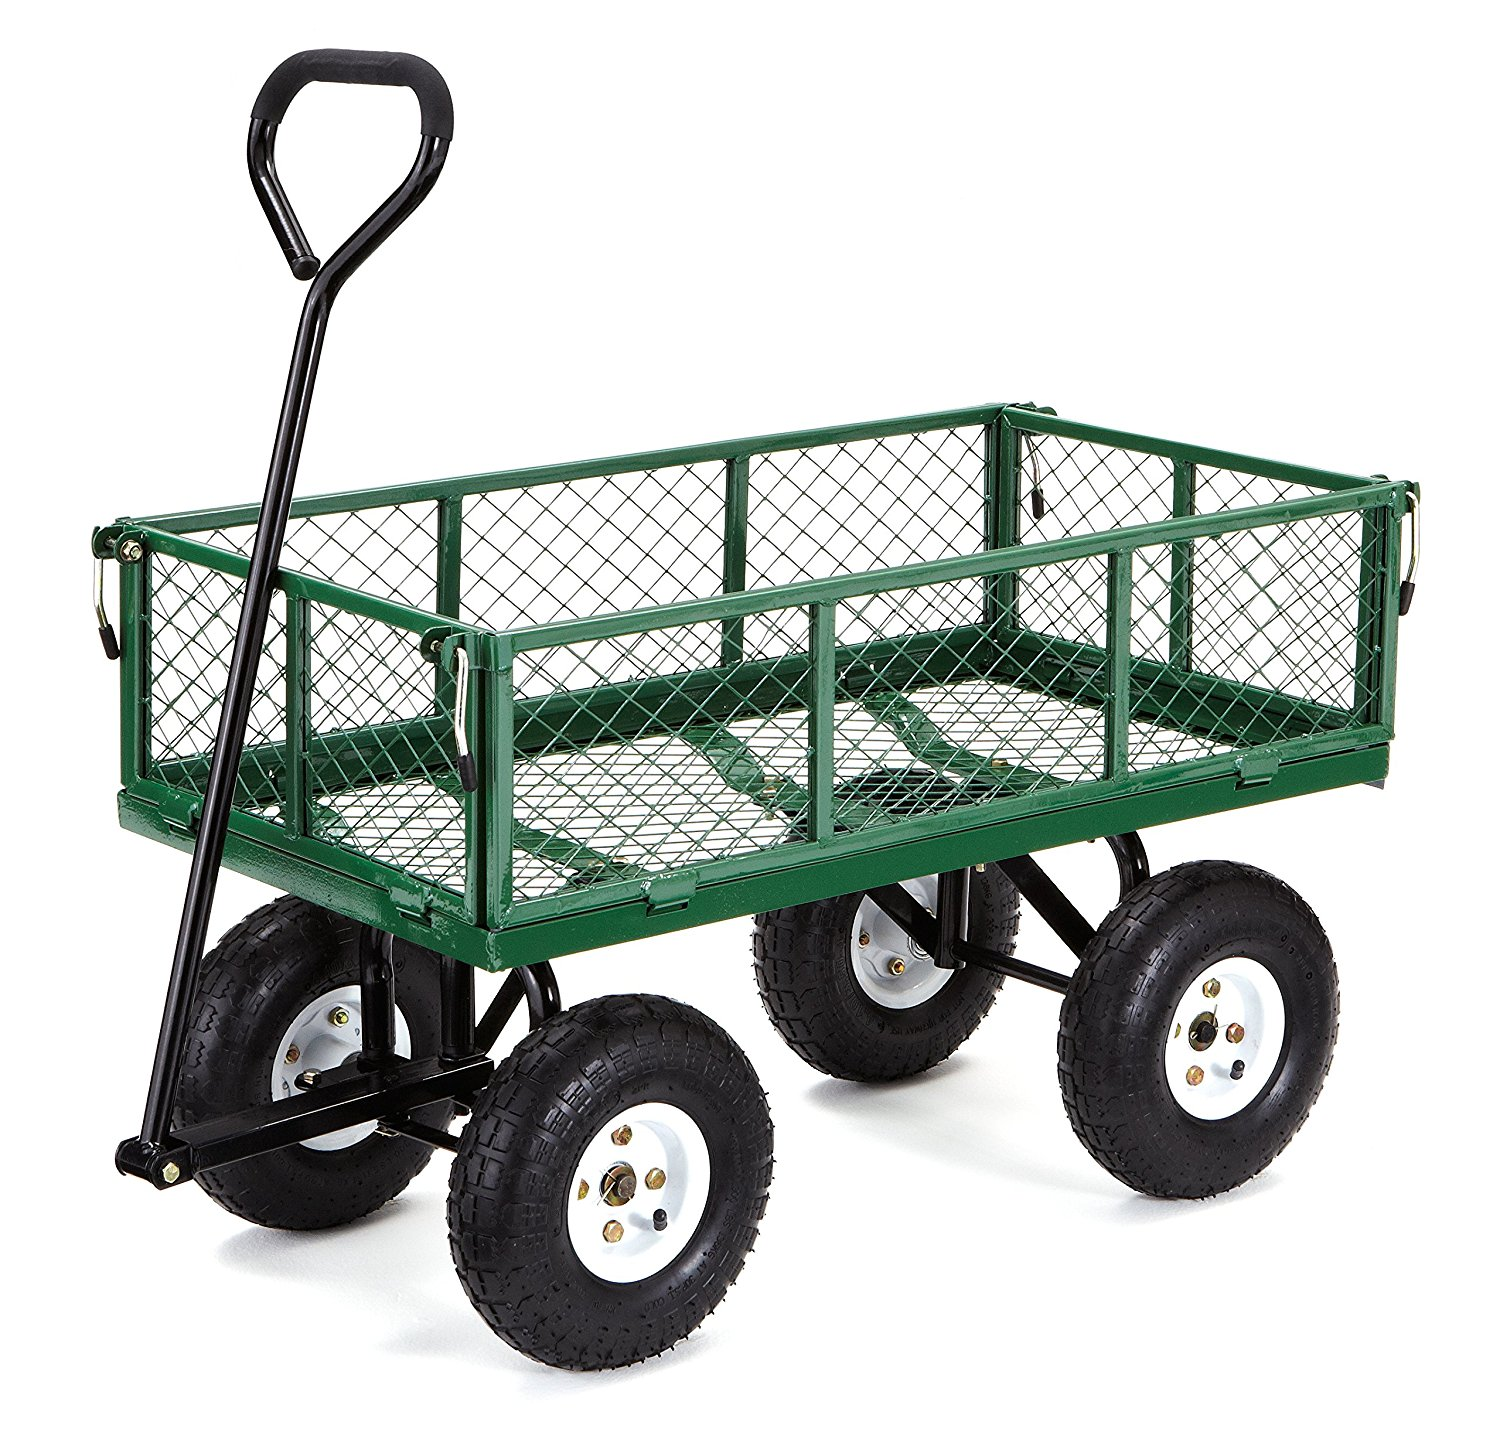 gorilla carts steel garden cart with removable sides with a capacity of 400  lb, green OEFIGFZ